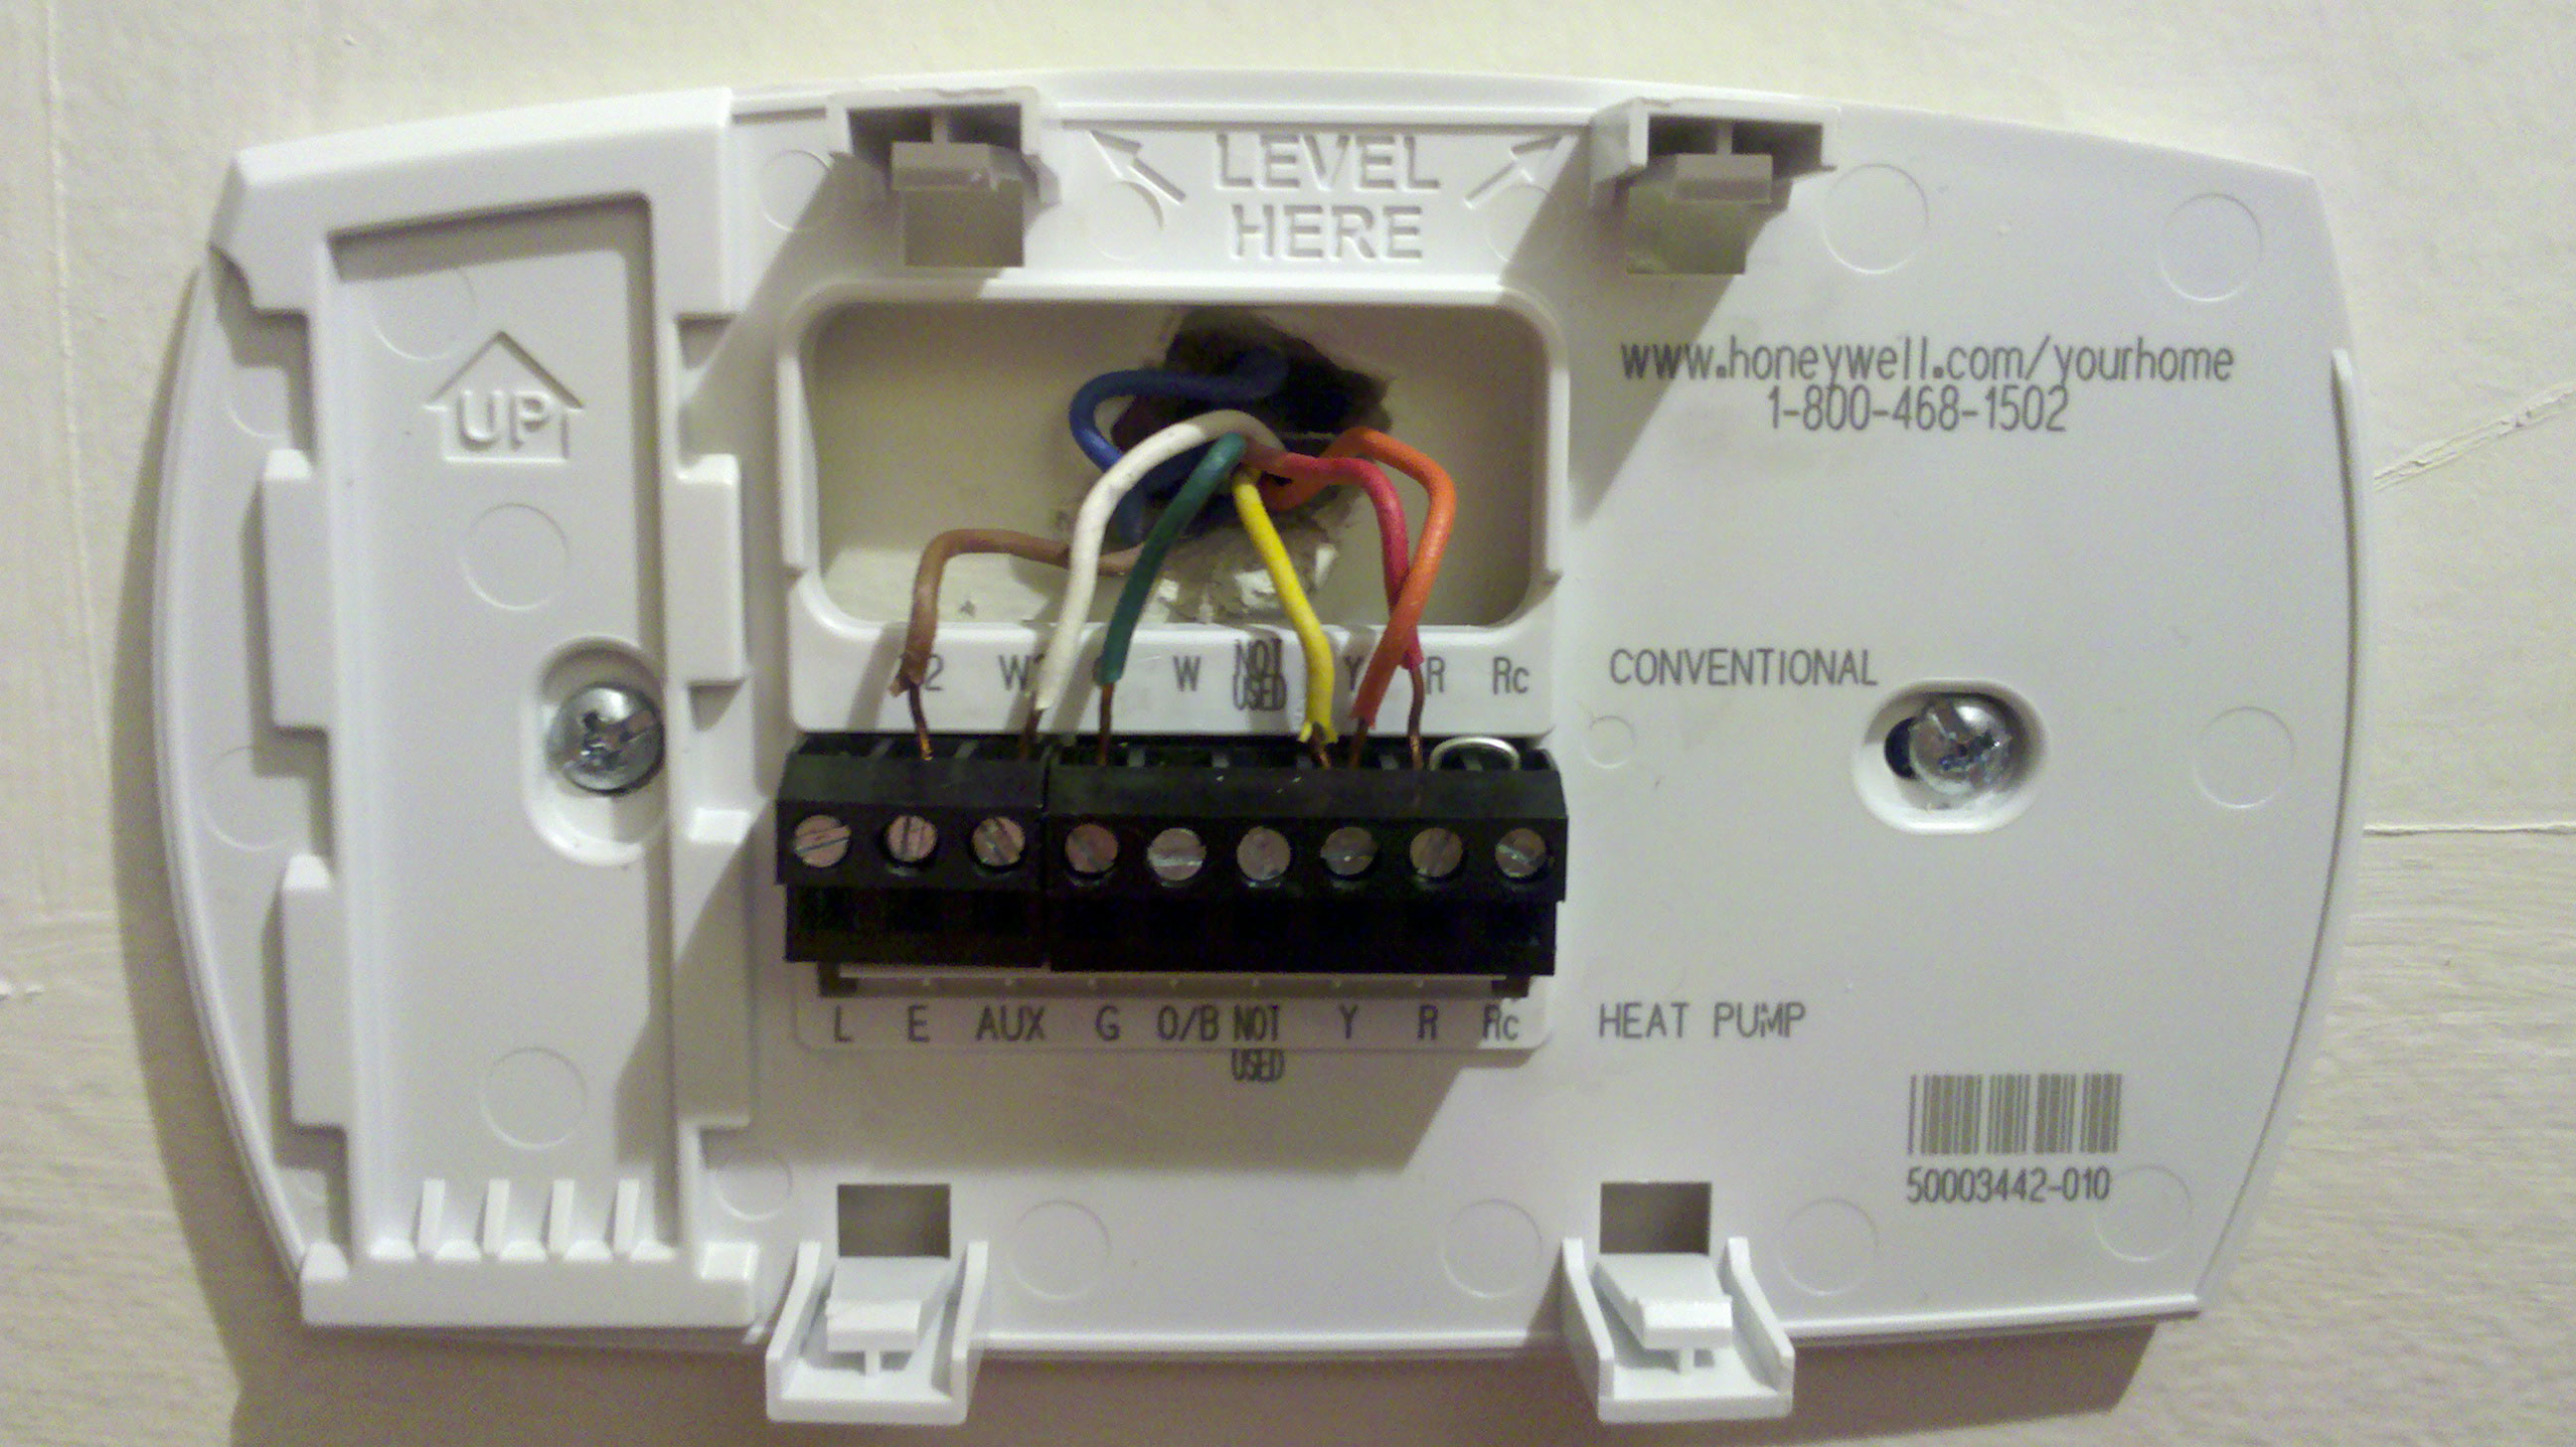 7 Wire Thermostat Diagram | Wiring Diagram - Honeywell Heat Pump Nest Thermostat Wiring Diagram